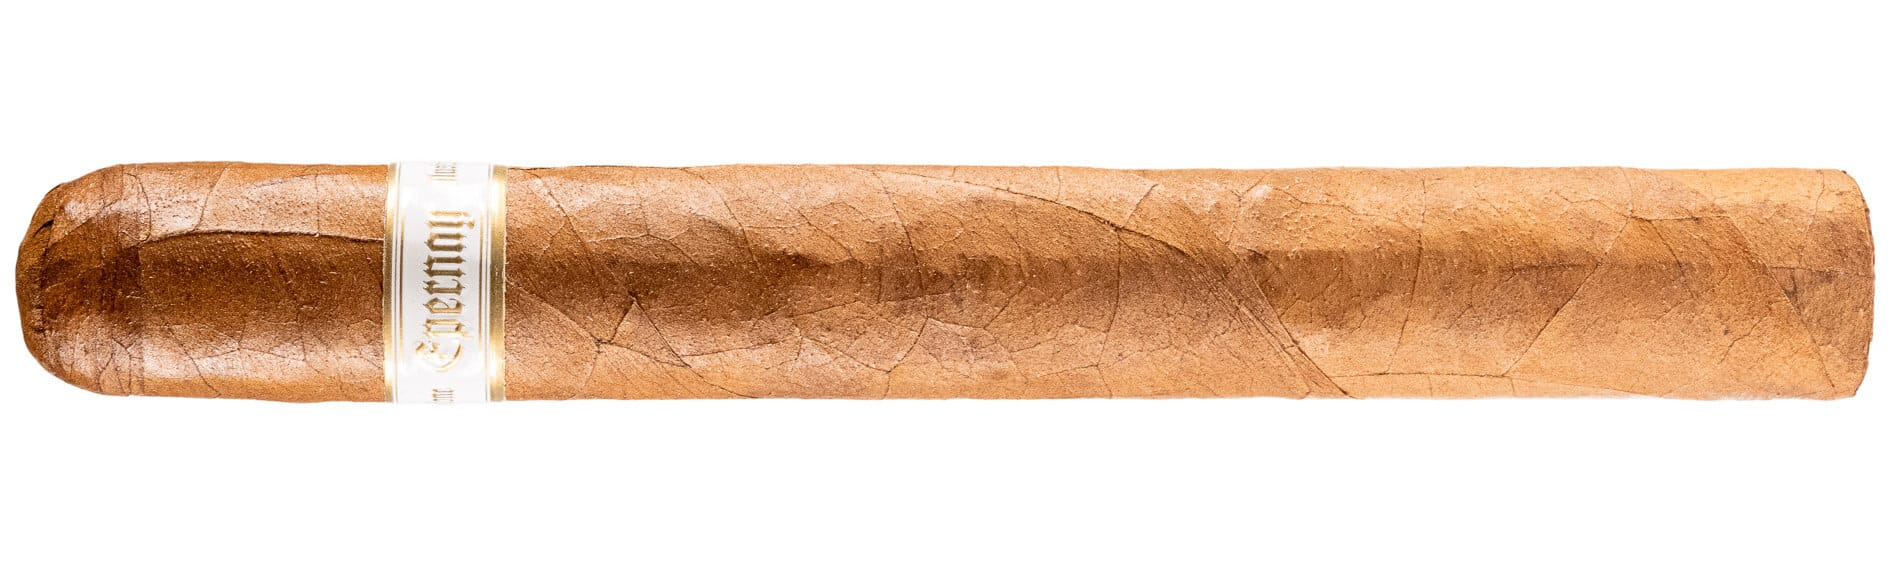 Blind Cigar Review: Illusione | Epernay 10th Anniversary d'Aosta Featured Image